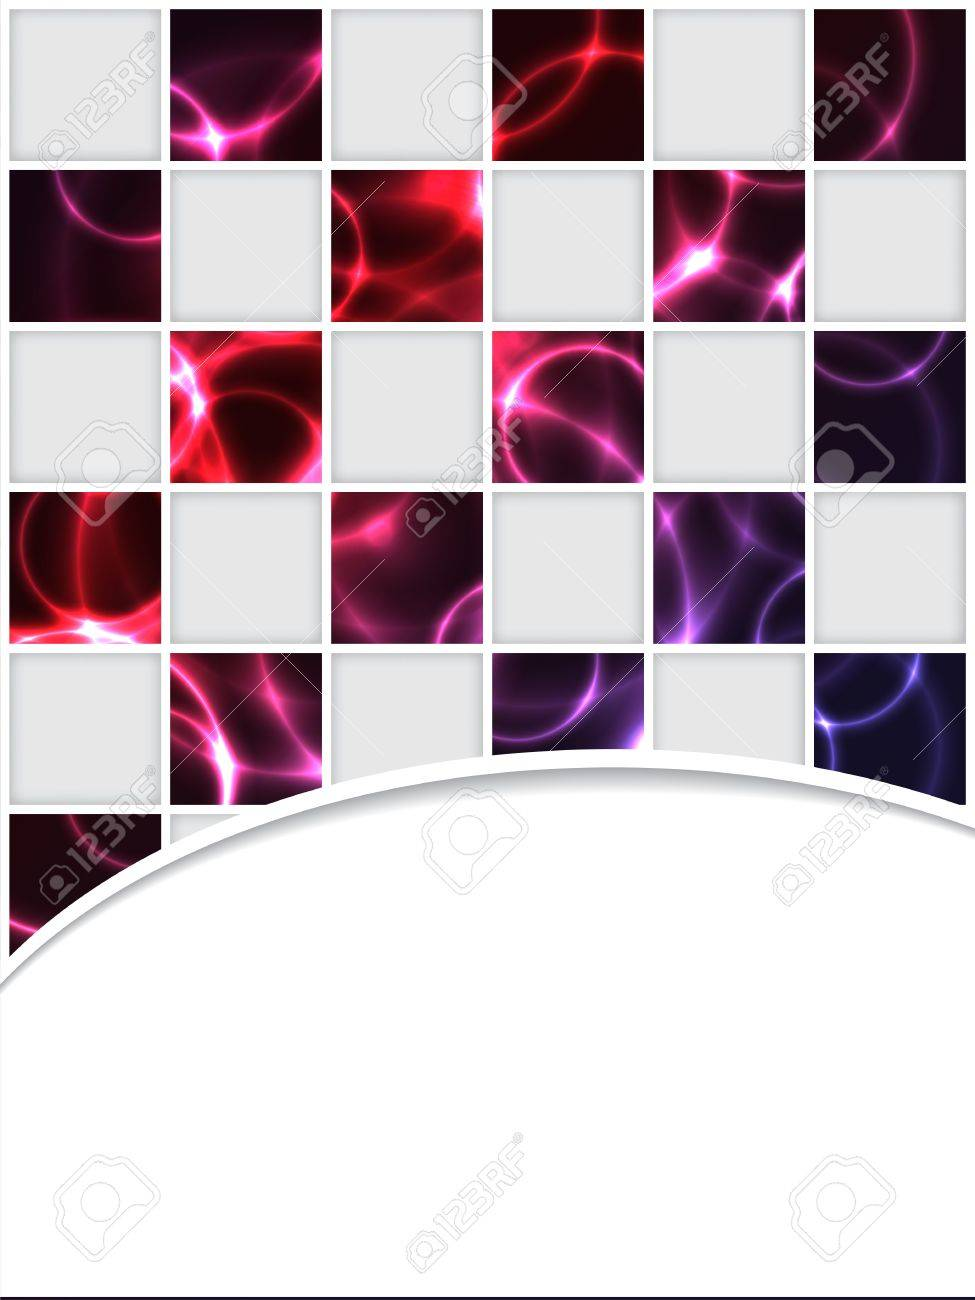 Checkered brochure design with red plasma effect Stock Vector - 13239213